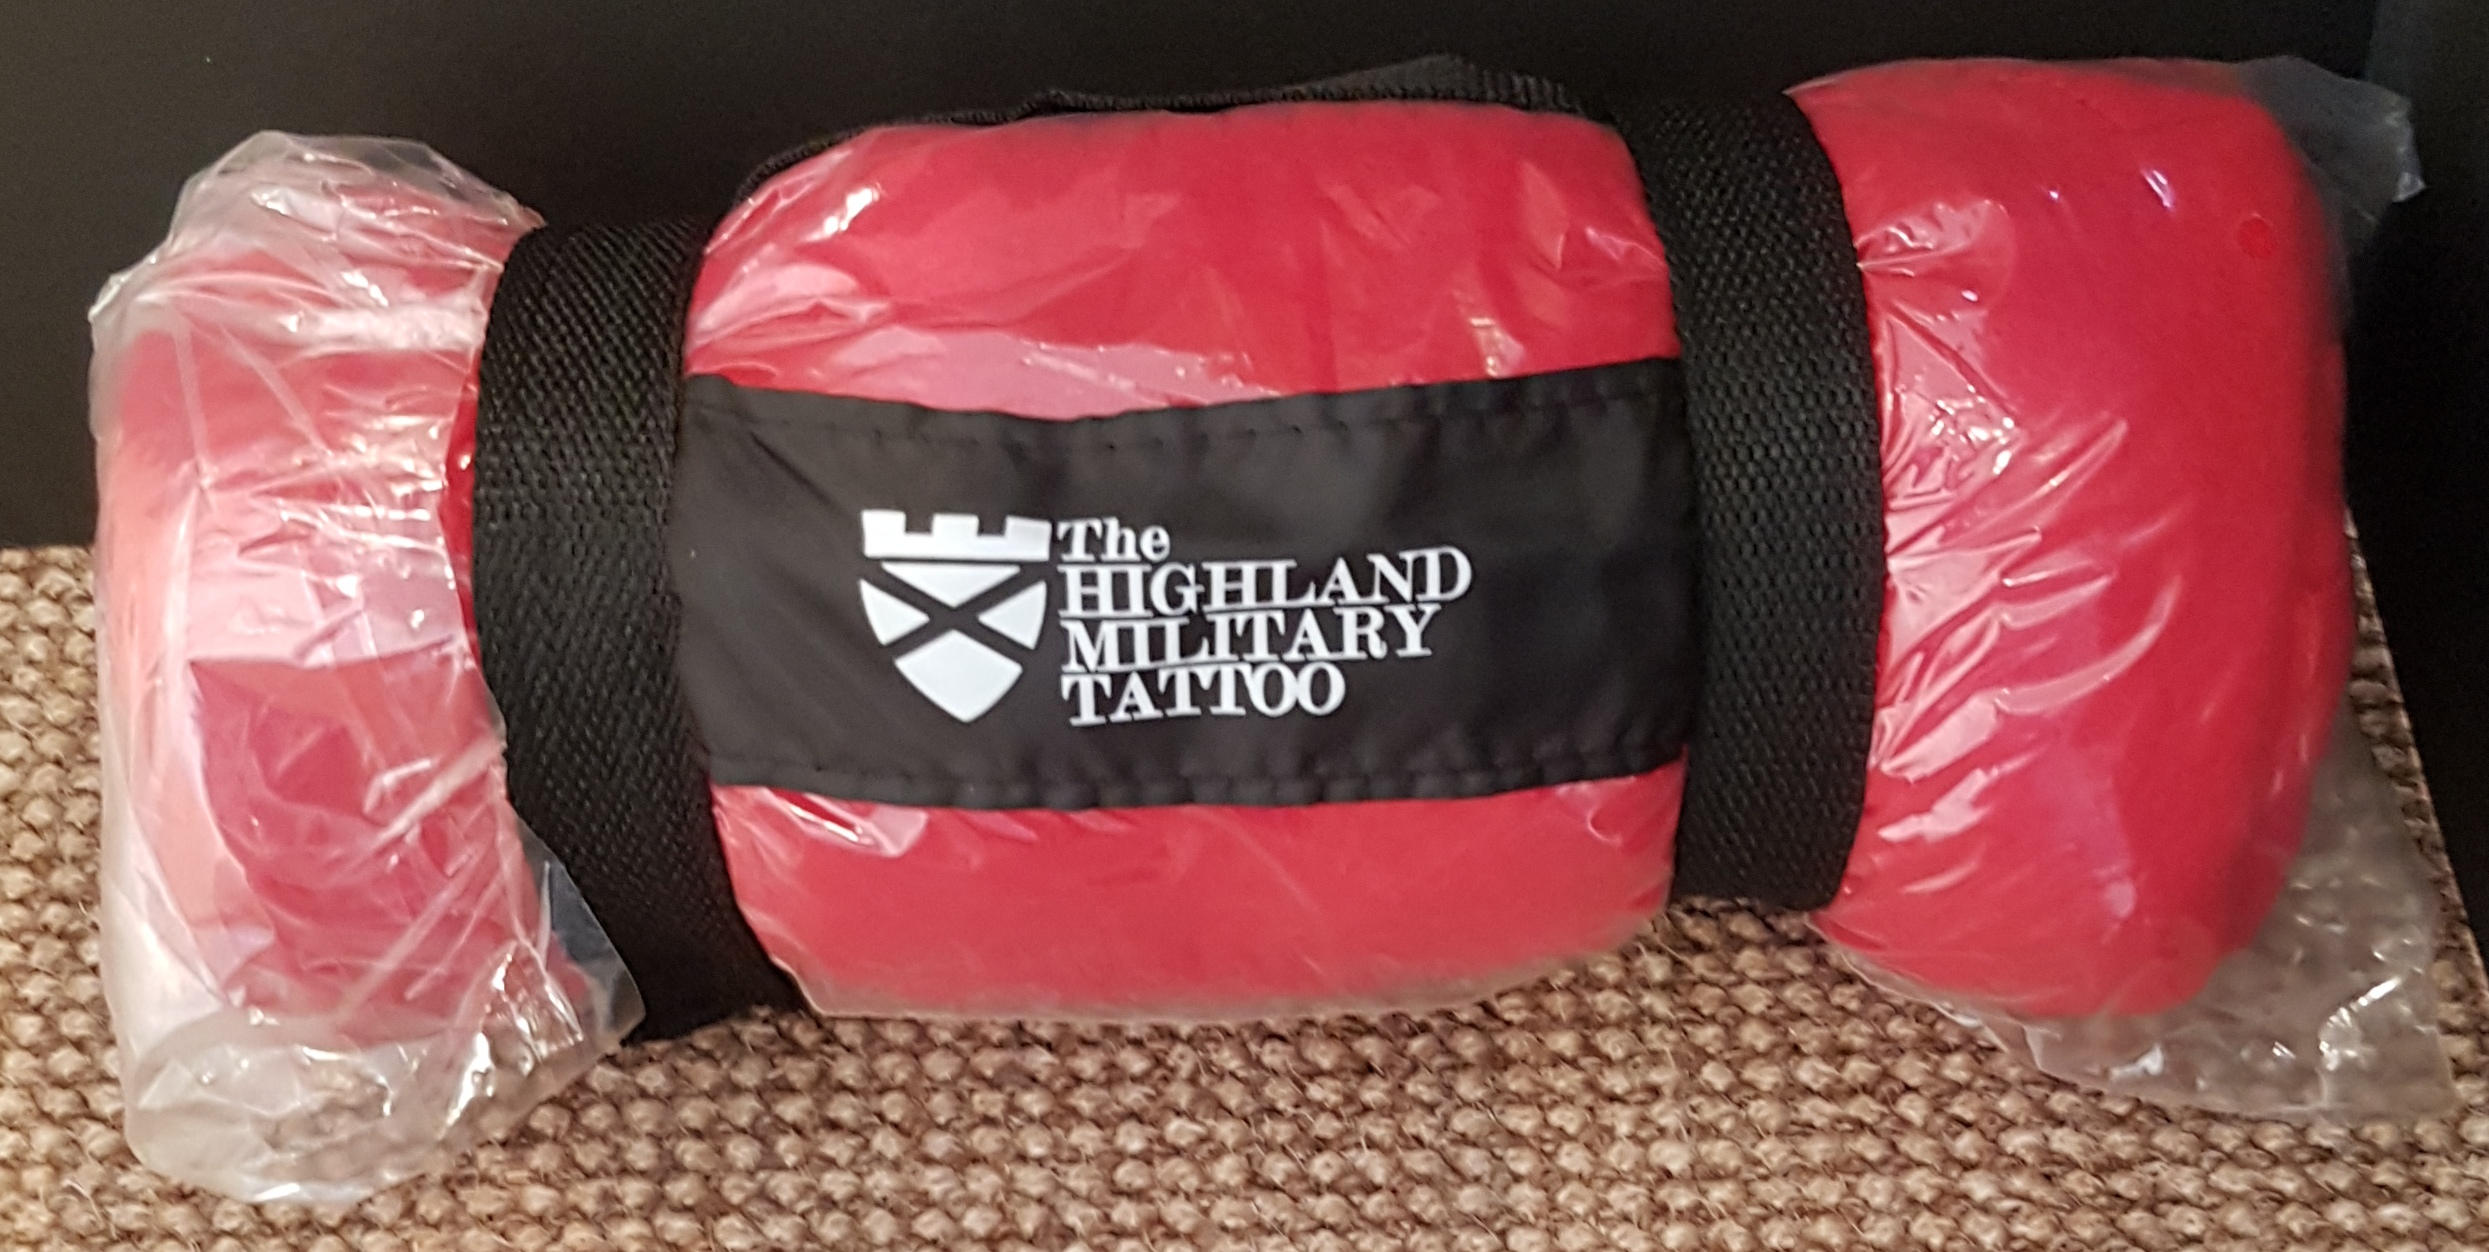 The Highland Military Tattoo Blanket